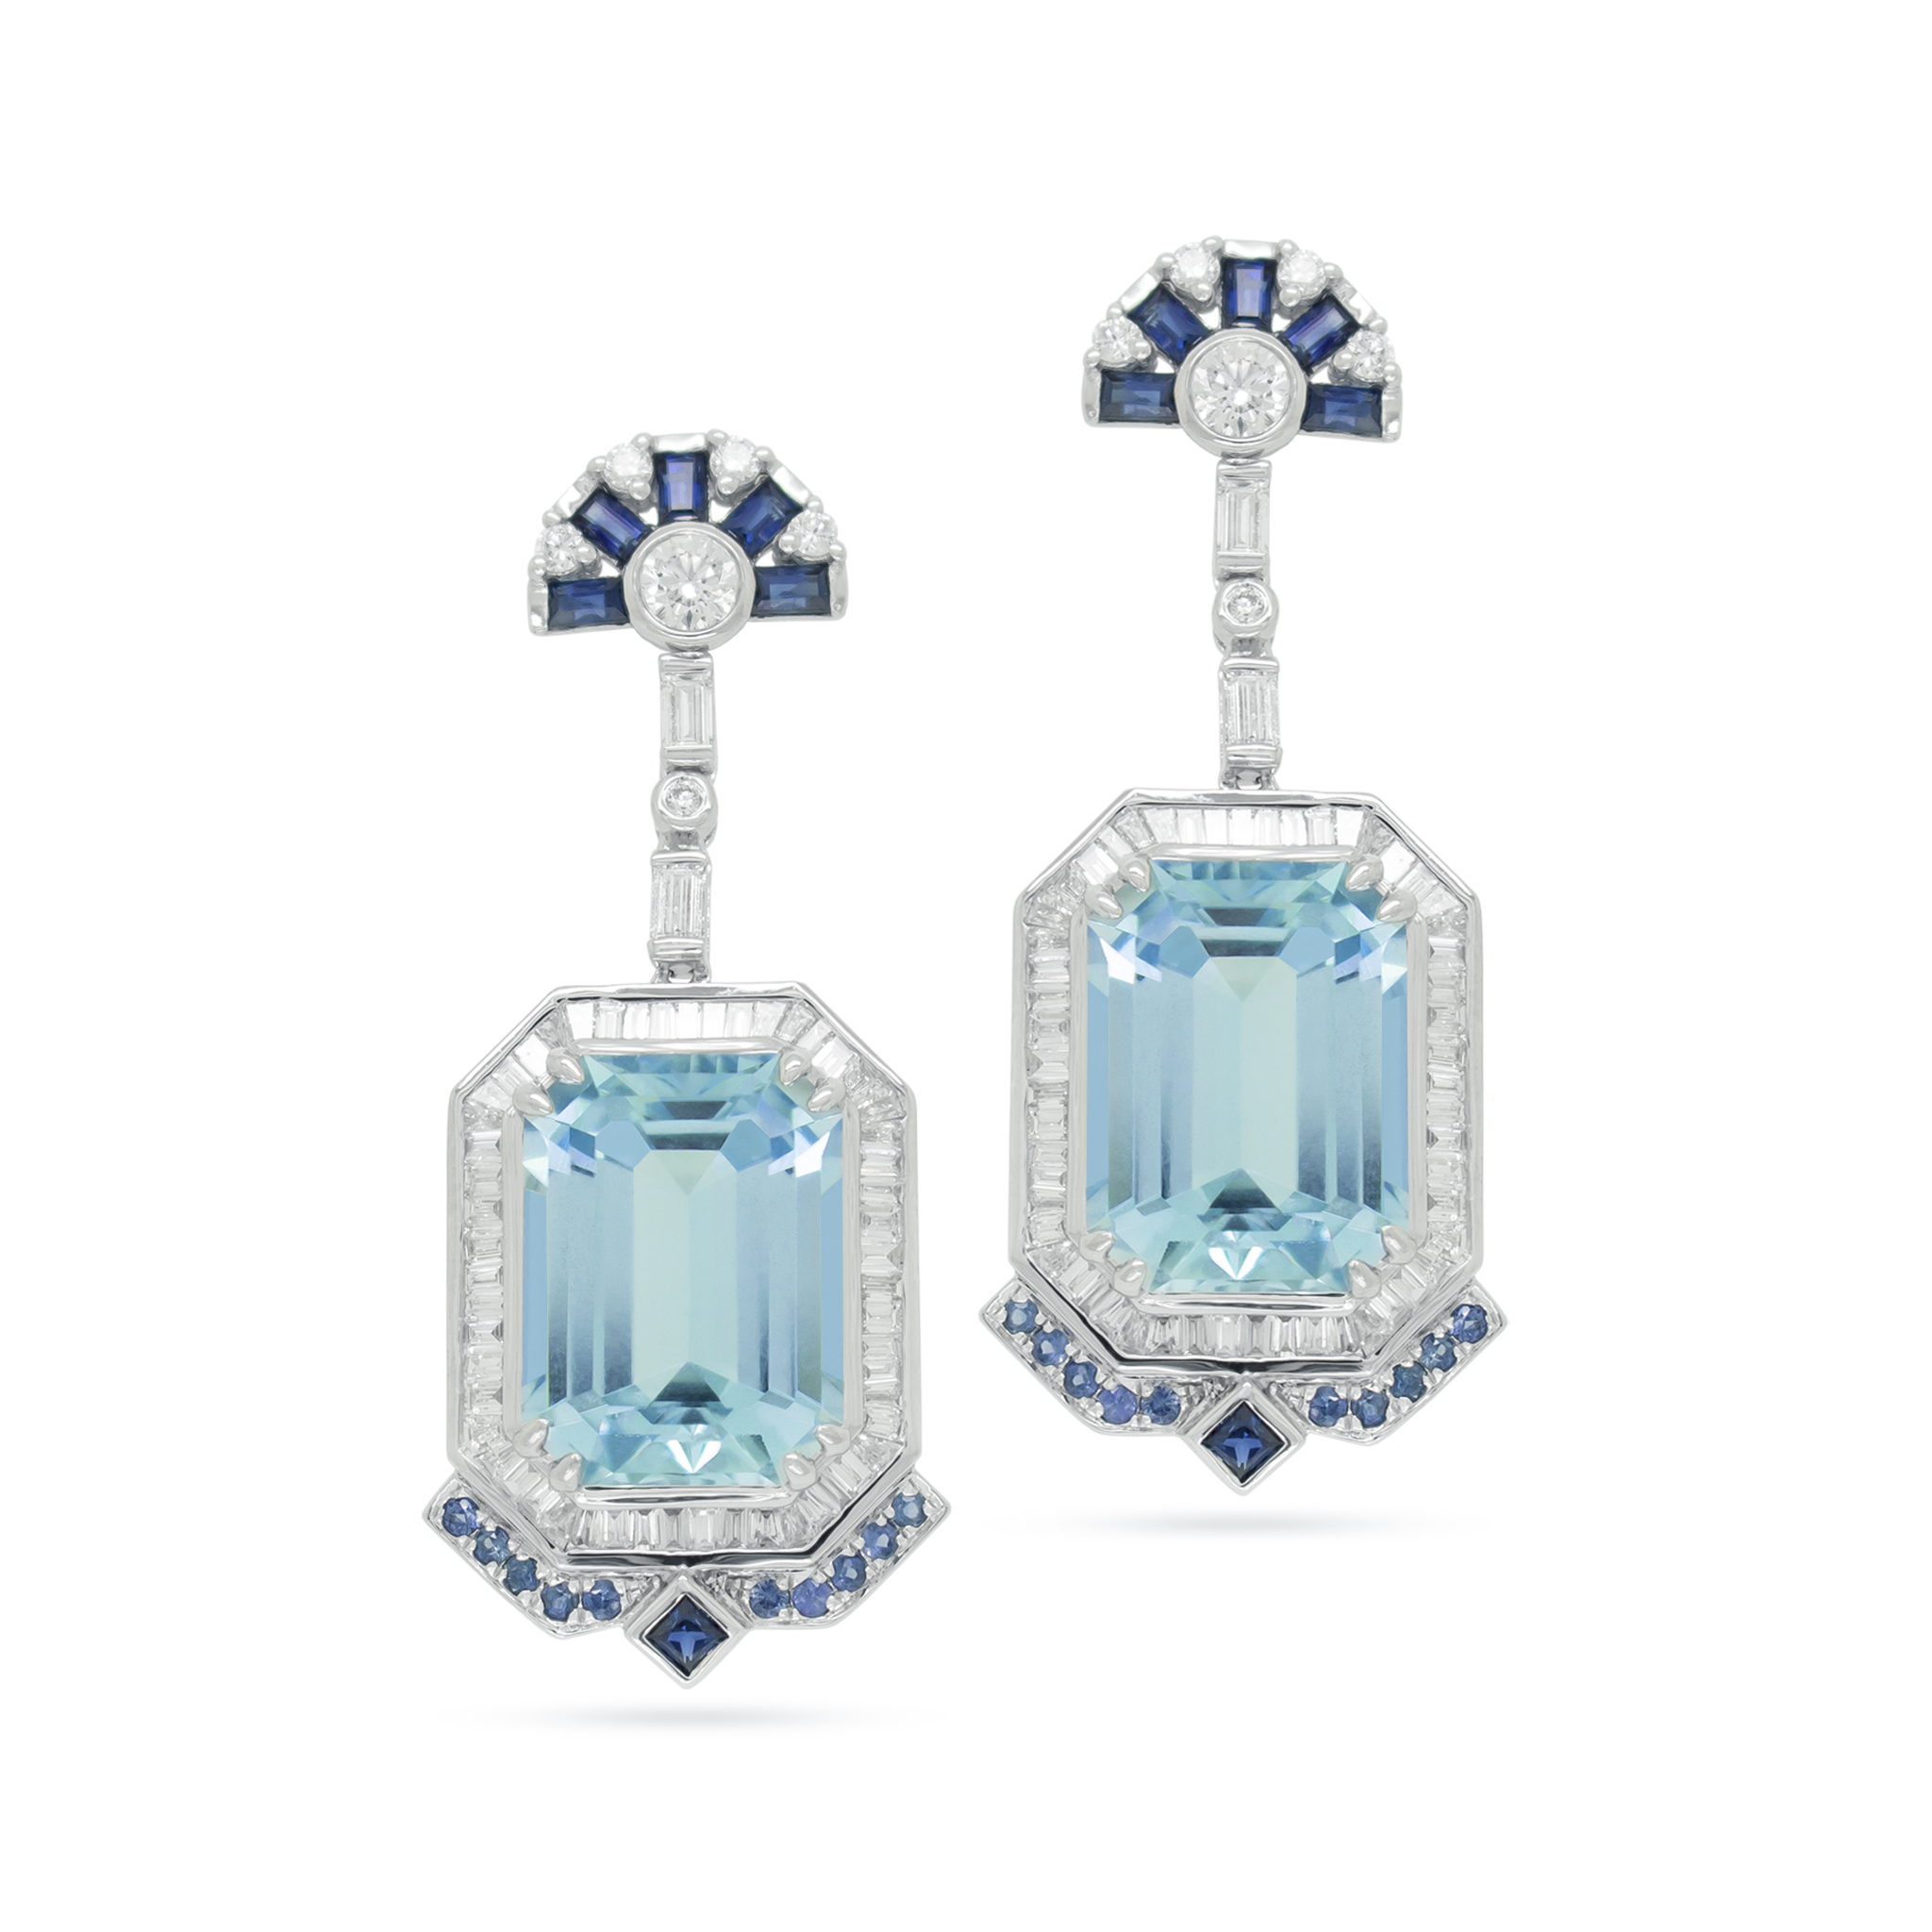 Aquamarine and Blue Sapphire Art Deco-In